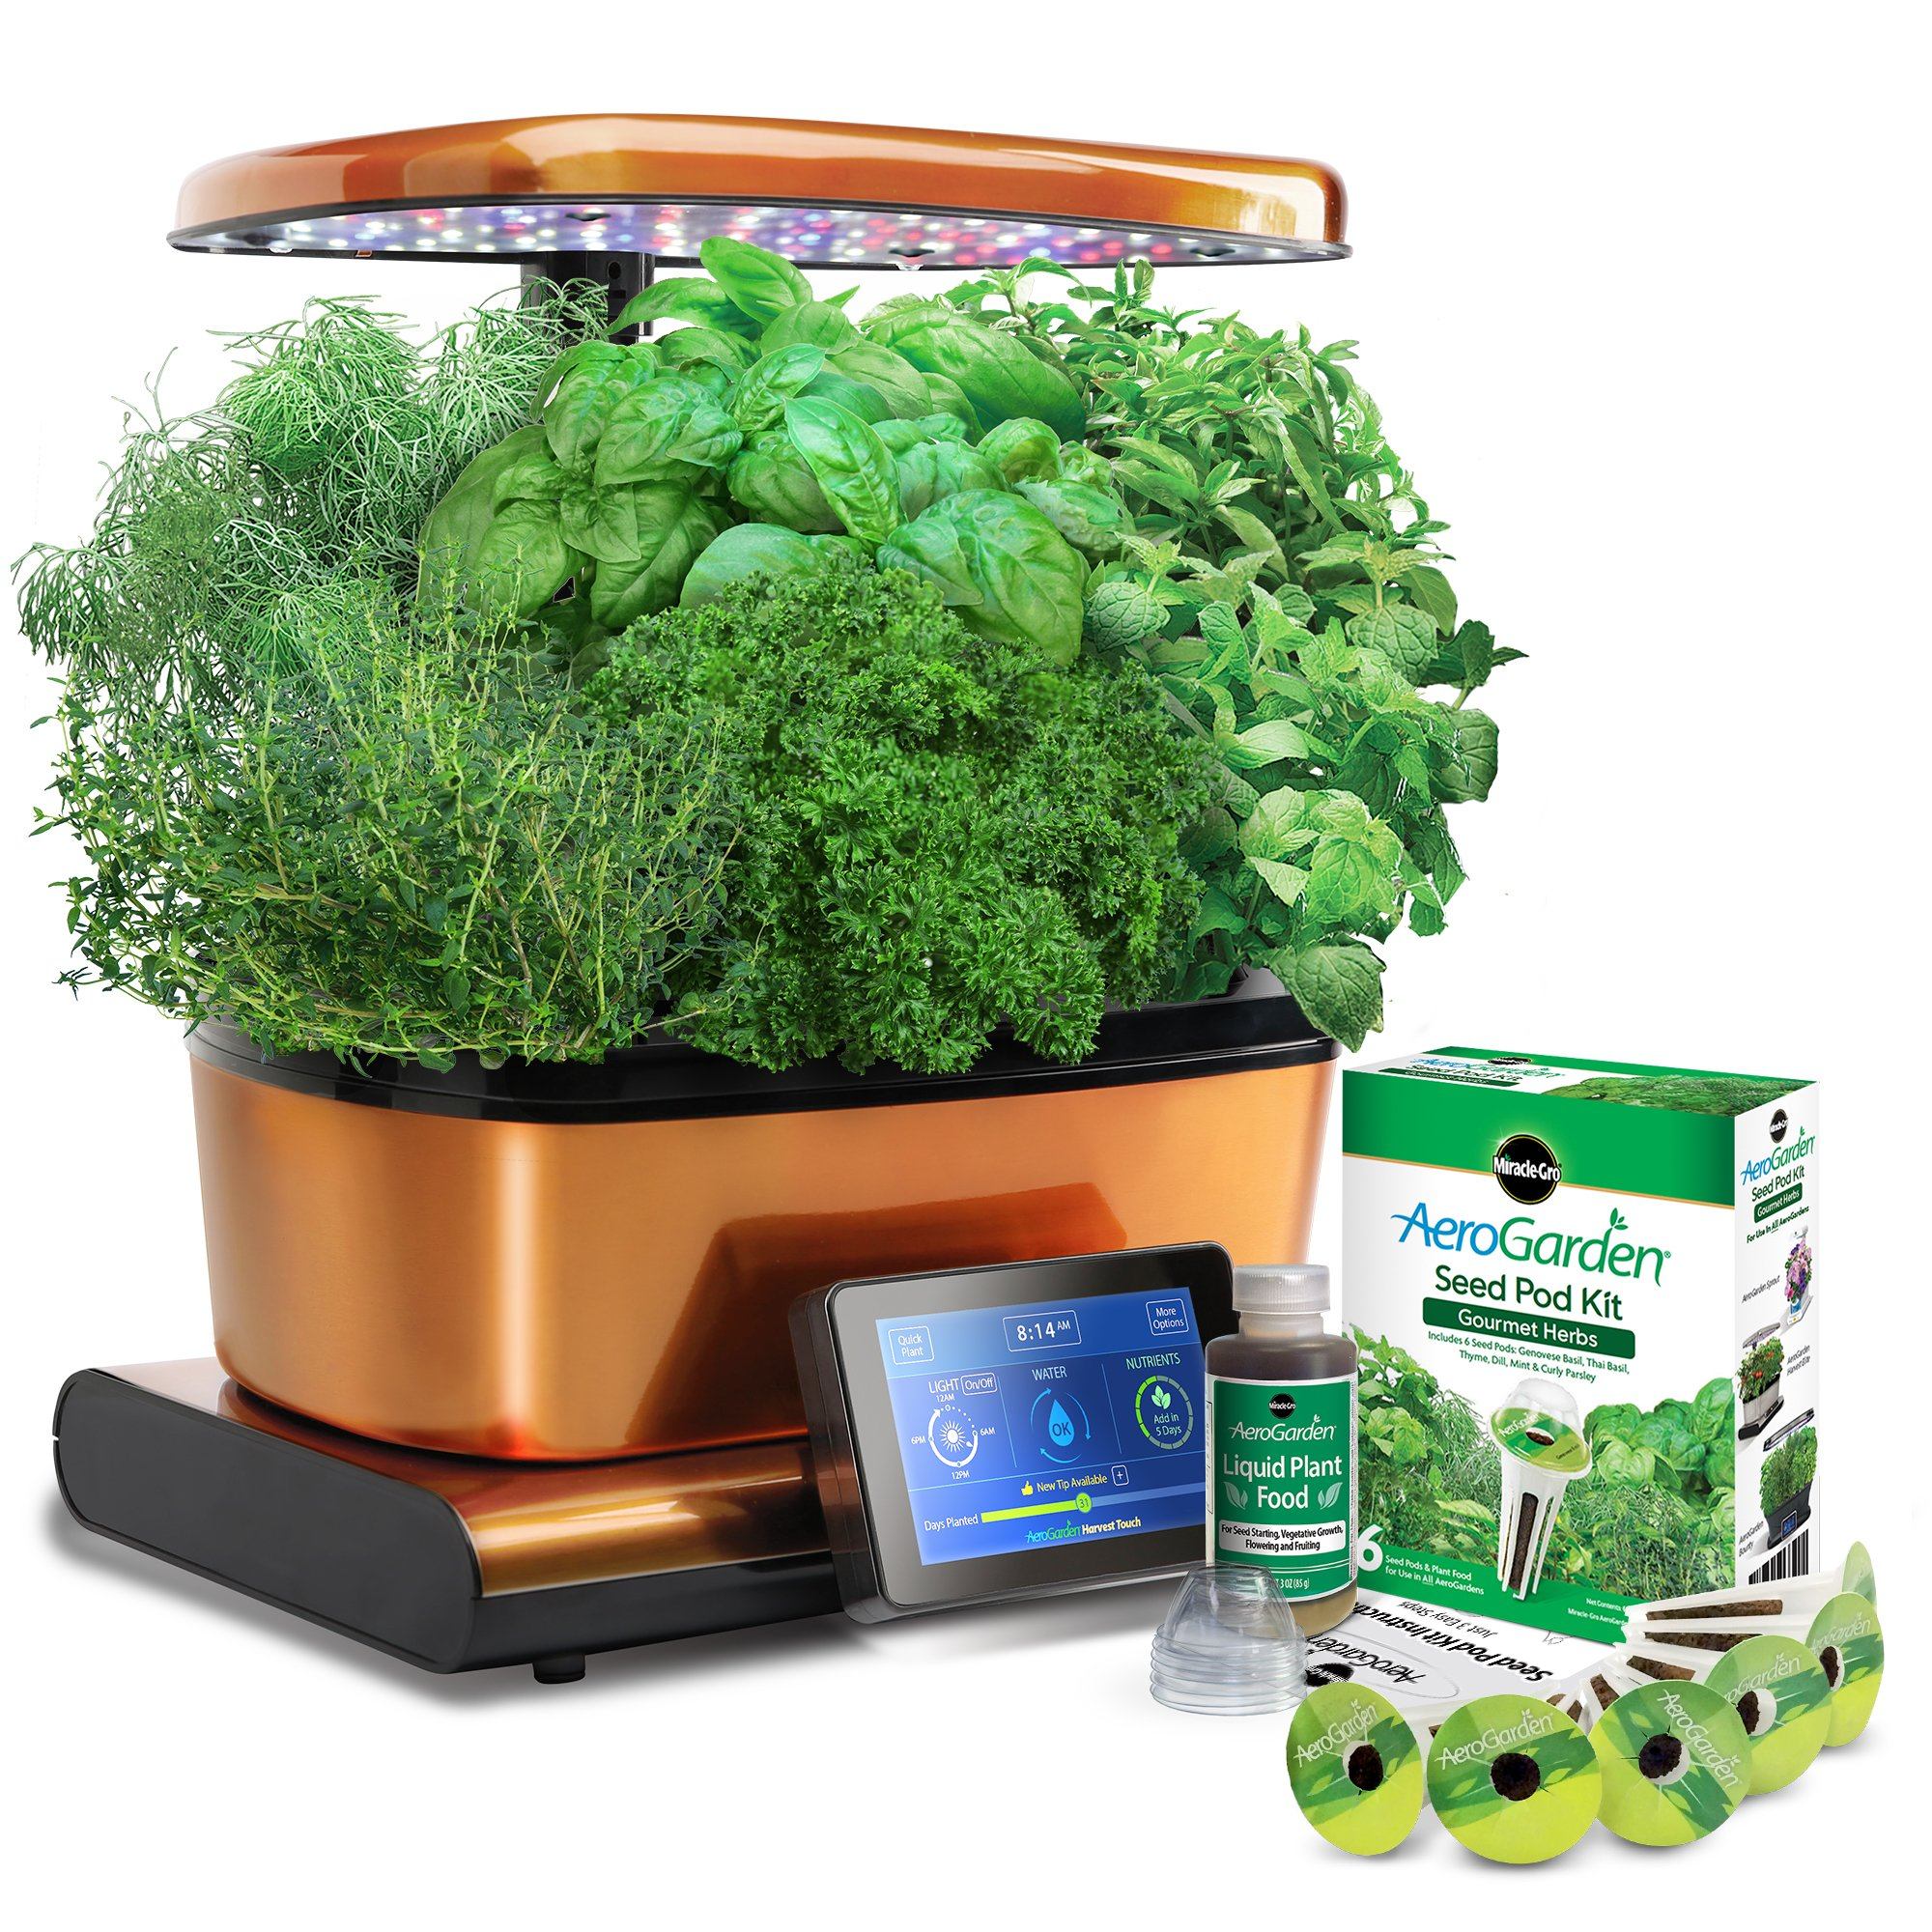 Harvest Touch by Aerogarden Copper Goldtone Stainless Steel Indoor Garden with Seed Starting Kit (See other available colors and options)